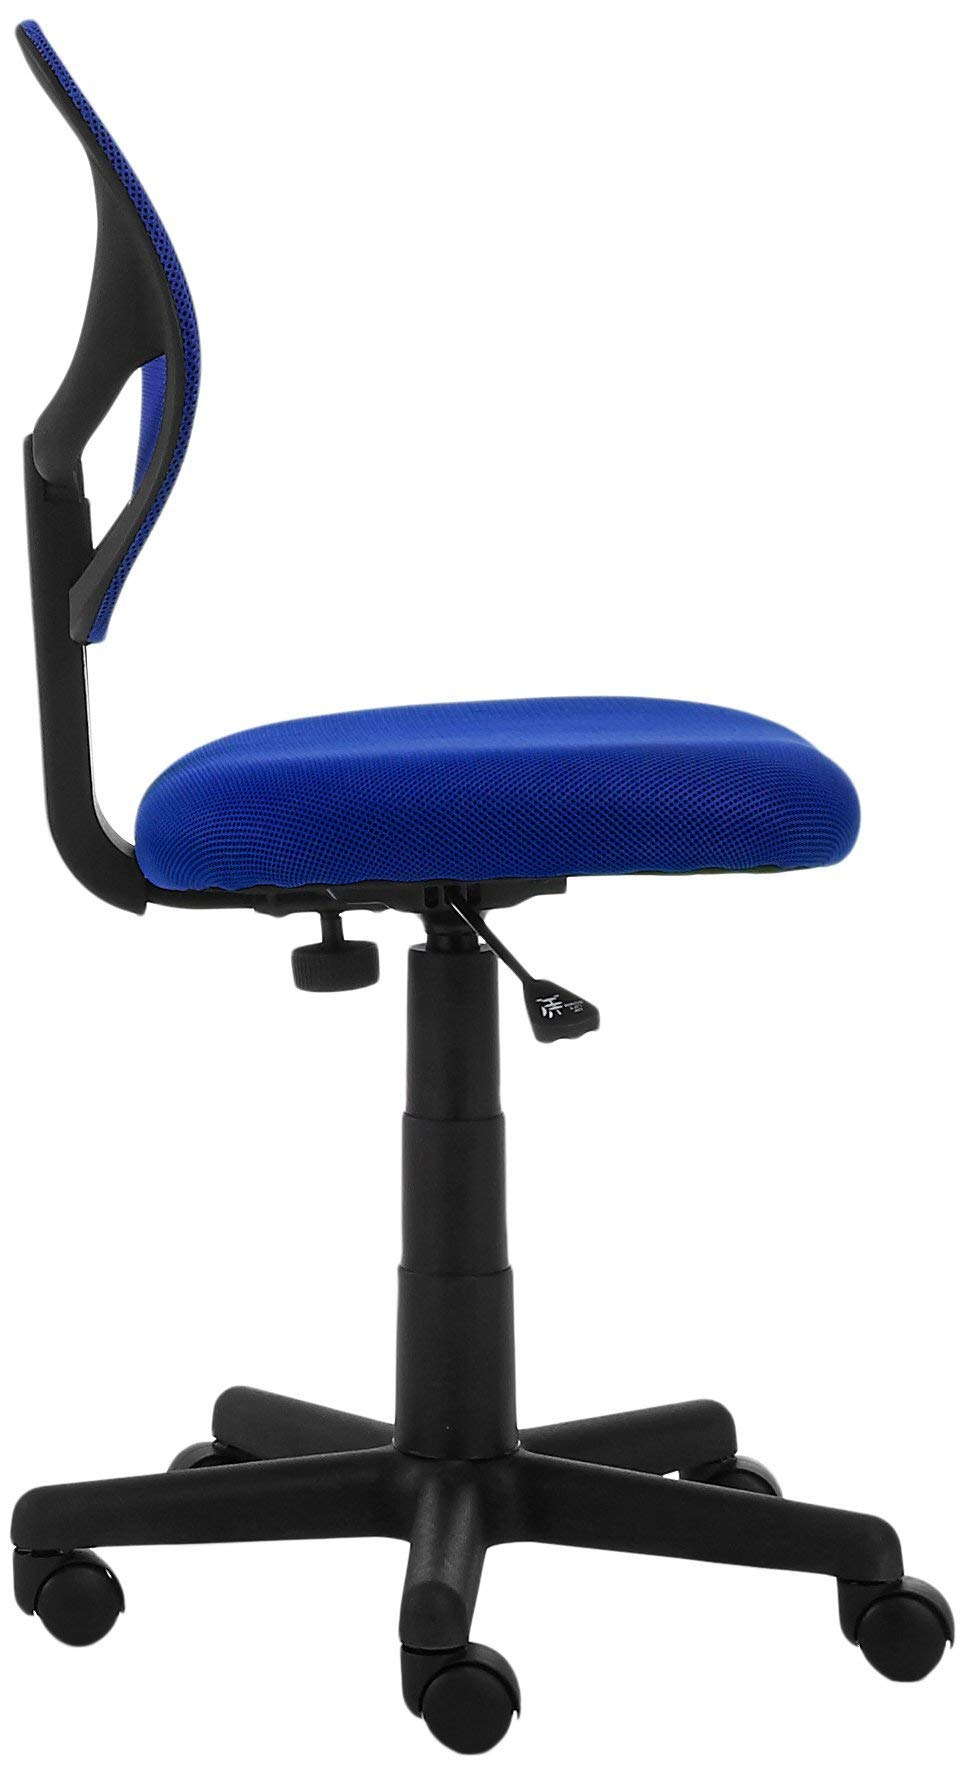 AmazonBasics Low-Back Computer Task Office Desk Chair with Swivel Casters - Blue by AmazonBasics (Image #5)